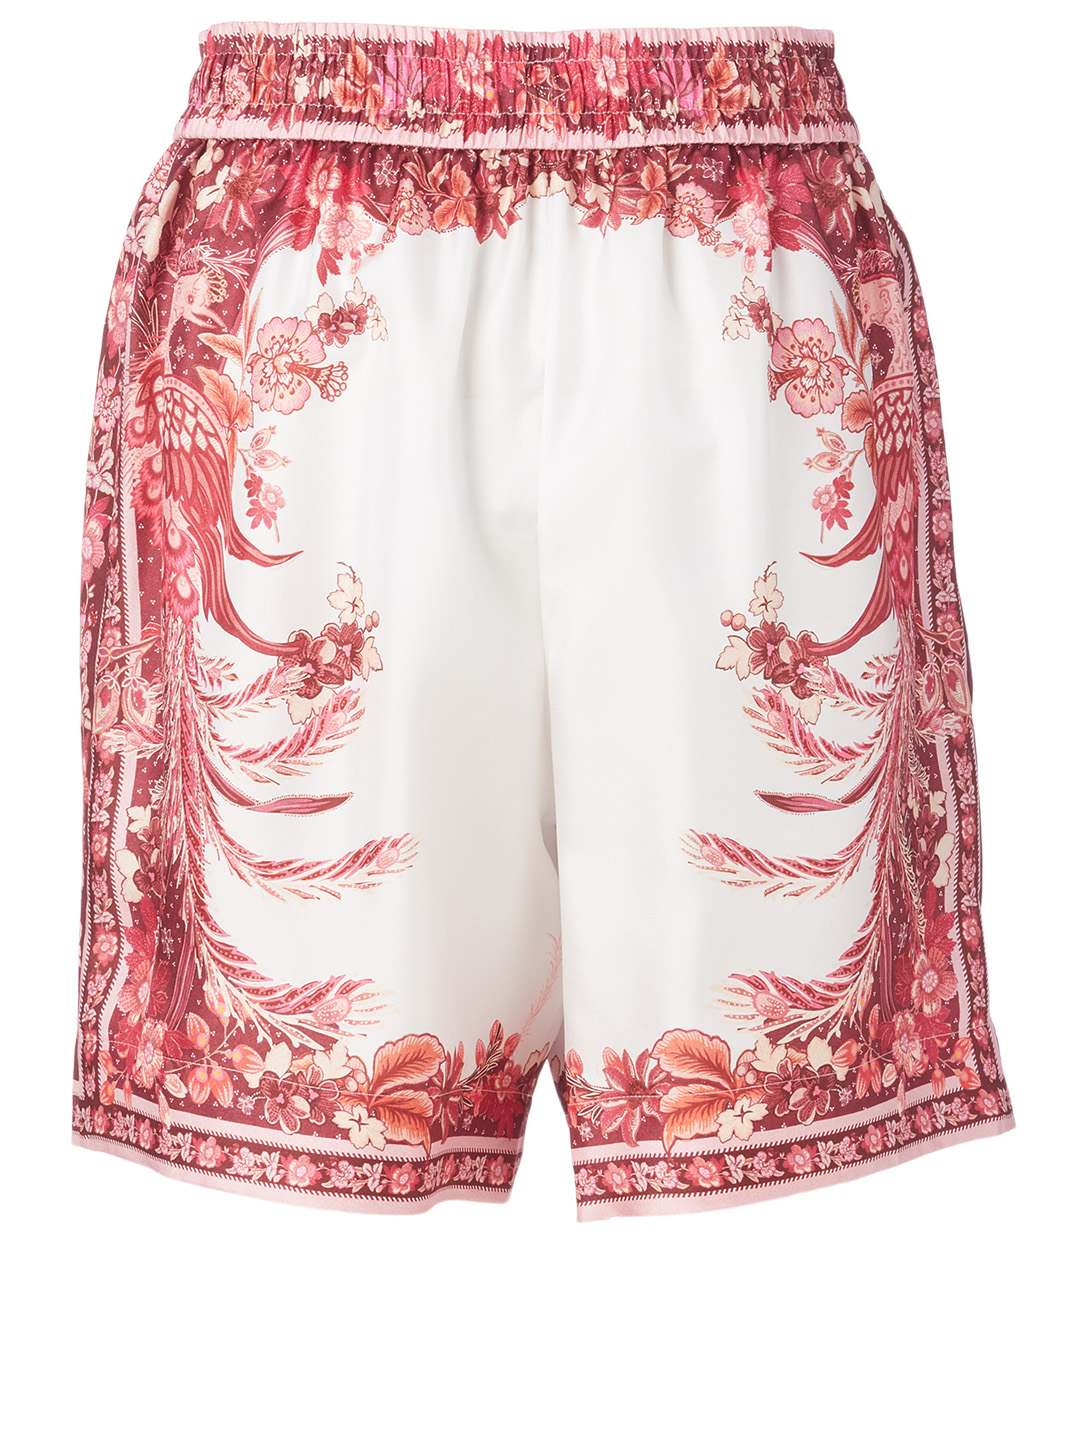 ZIMMERMANN Wavelength Silk Shorts With Placement Print Women's Pink